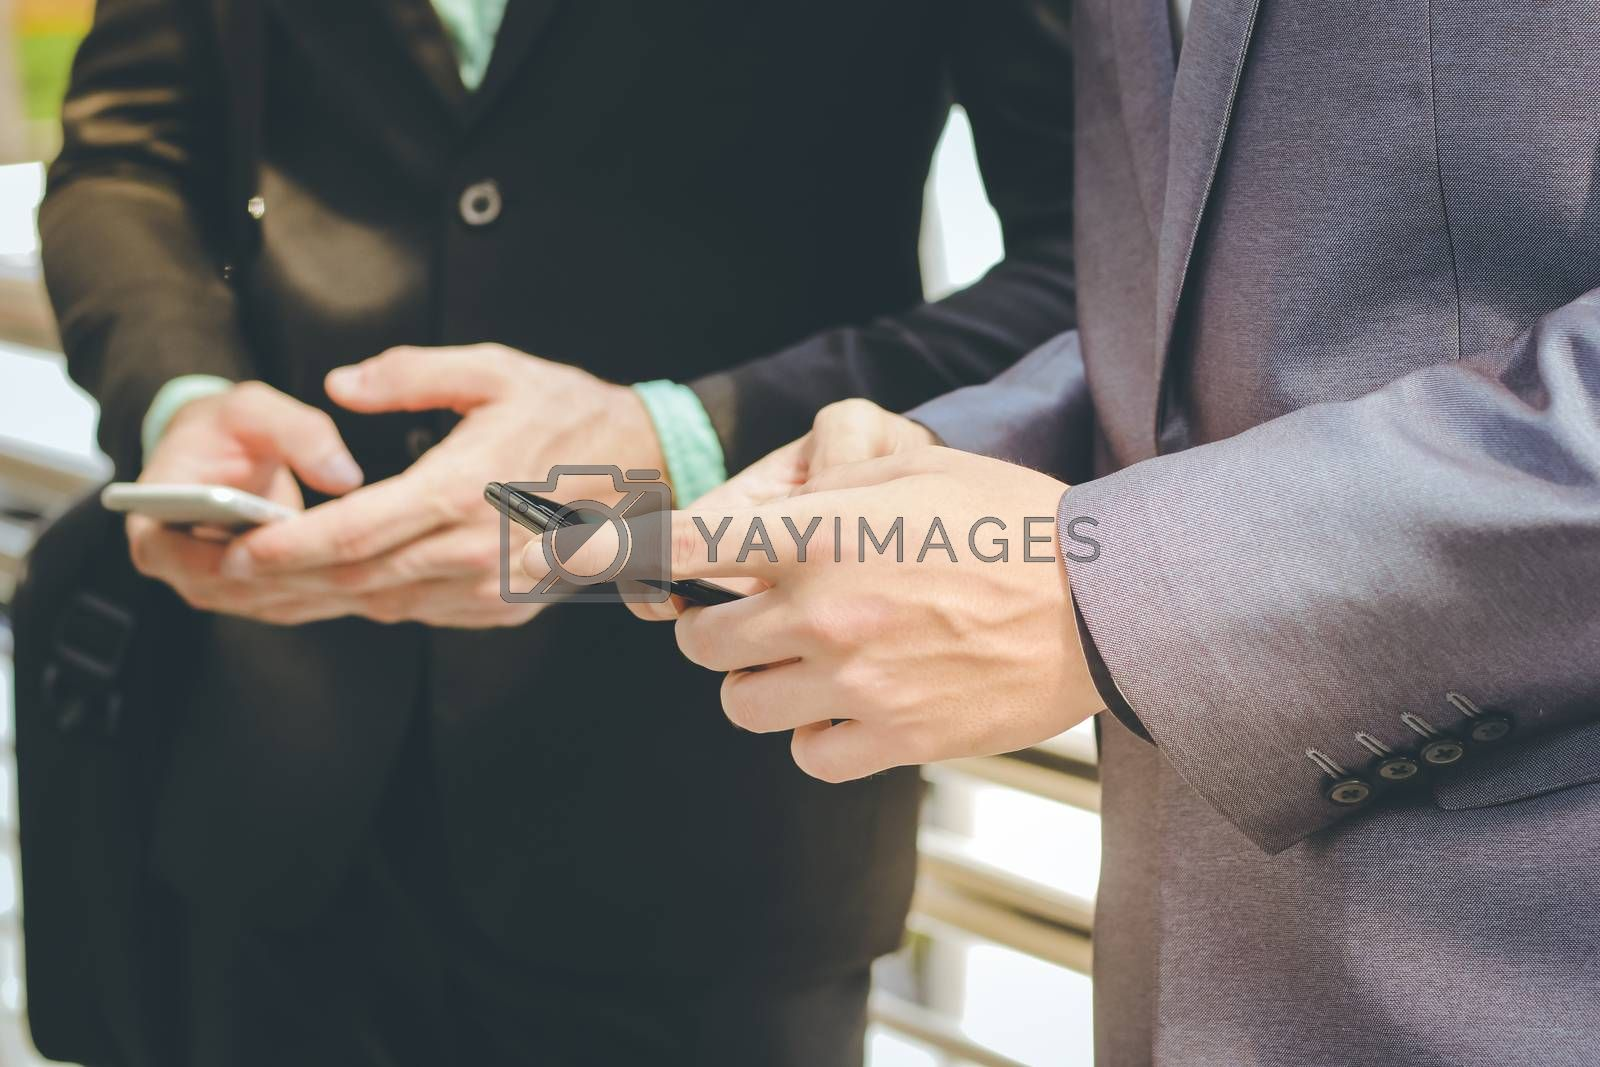 Midsection of two colleague businessmen using smartphone, business and technology concept